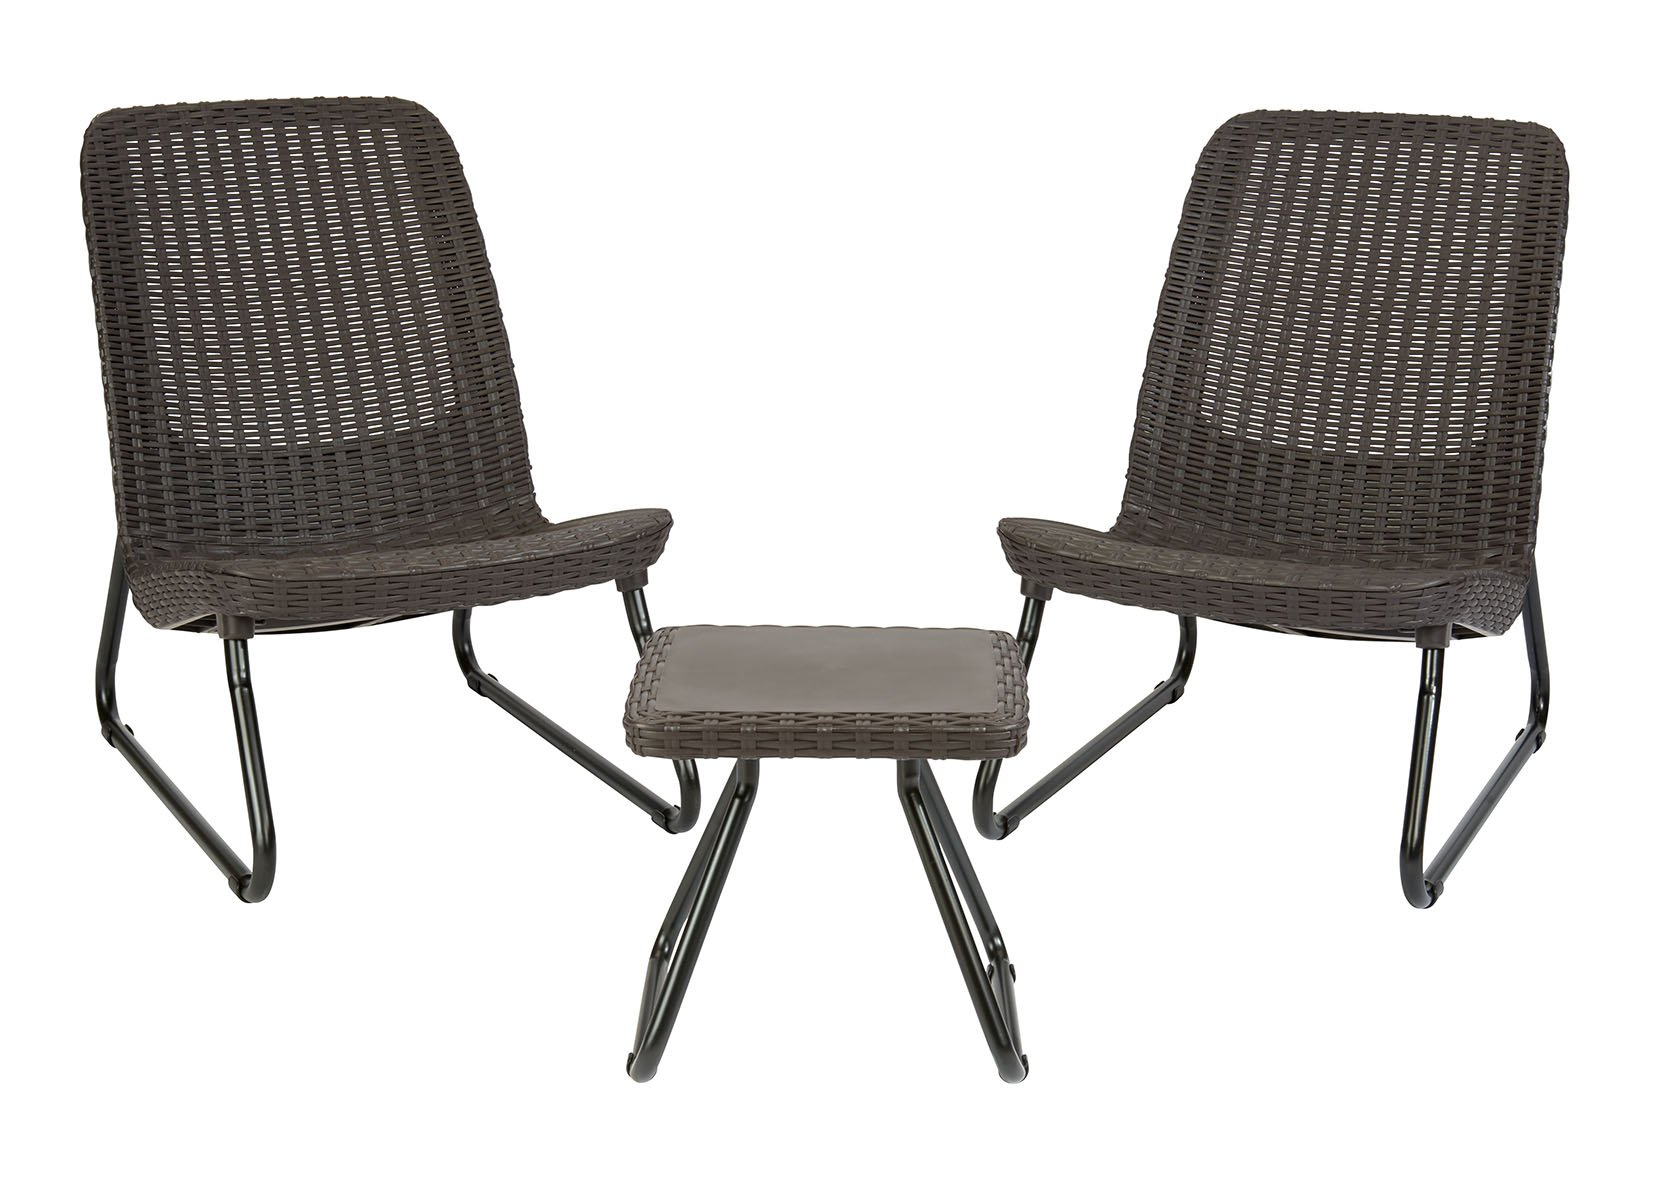 Keter Rio 3 Pc All Weather Outdoor Patio Garden Conversation Chair & Table Set Furniture, Brown by Keter (Image #1)